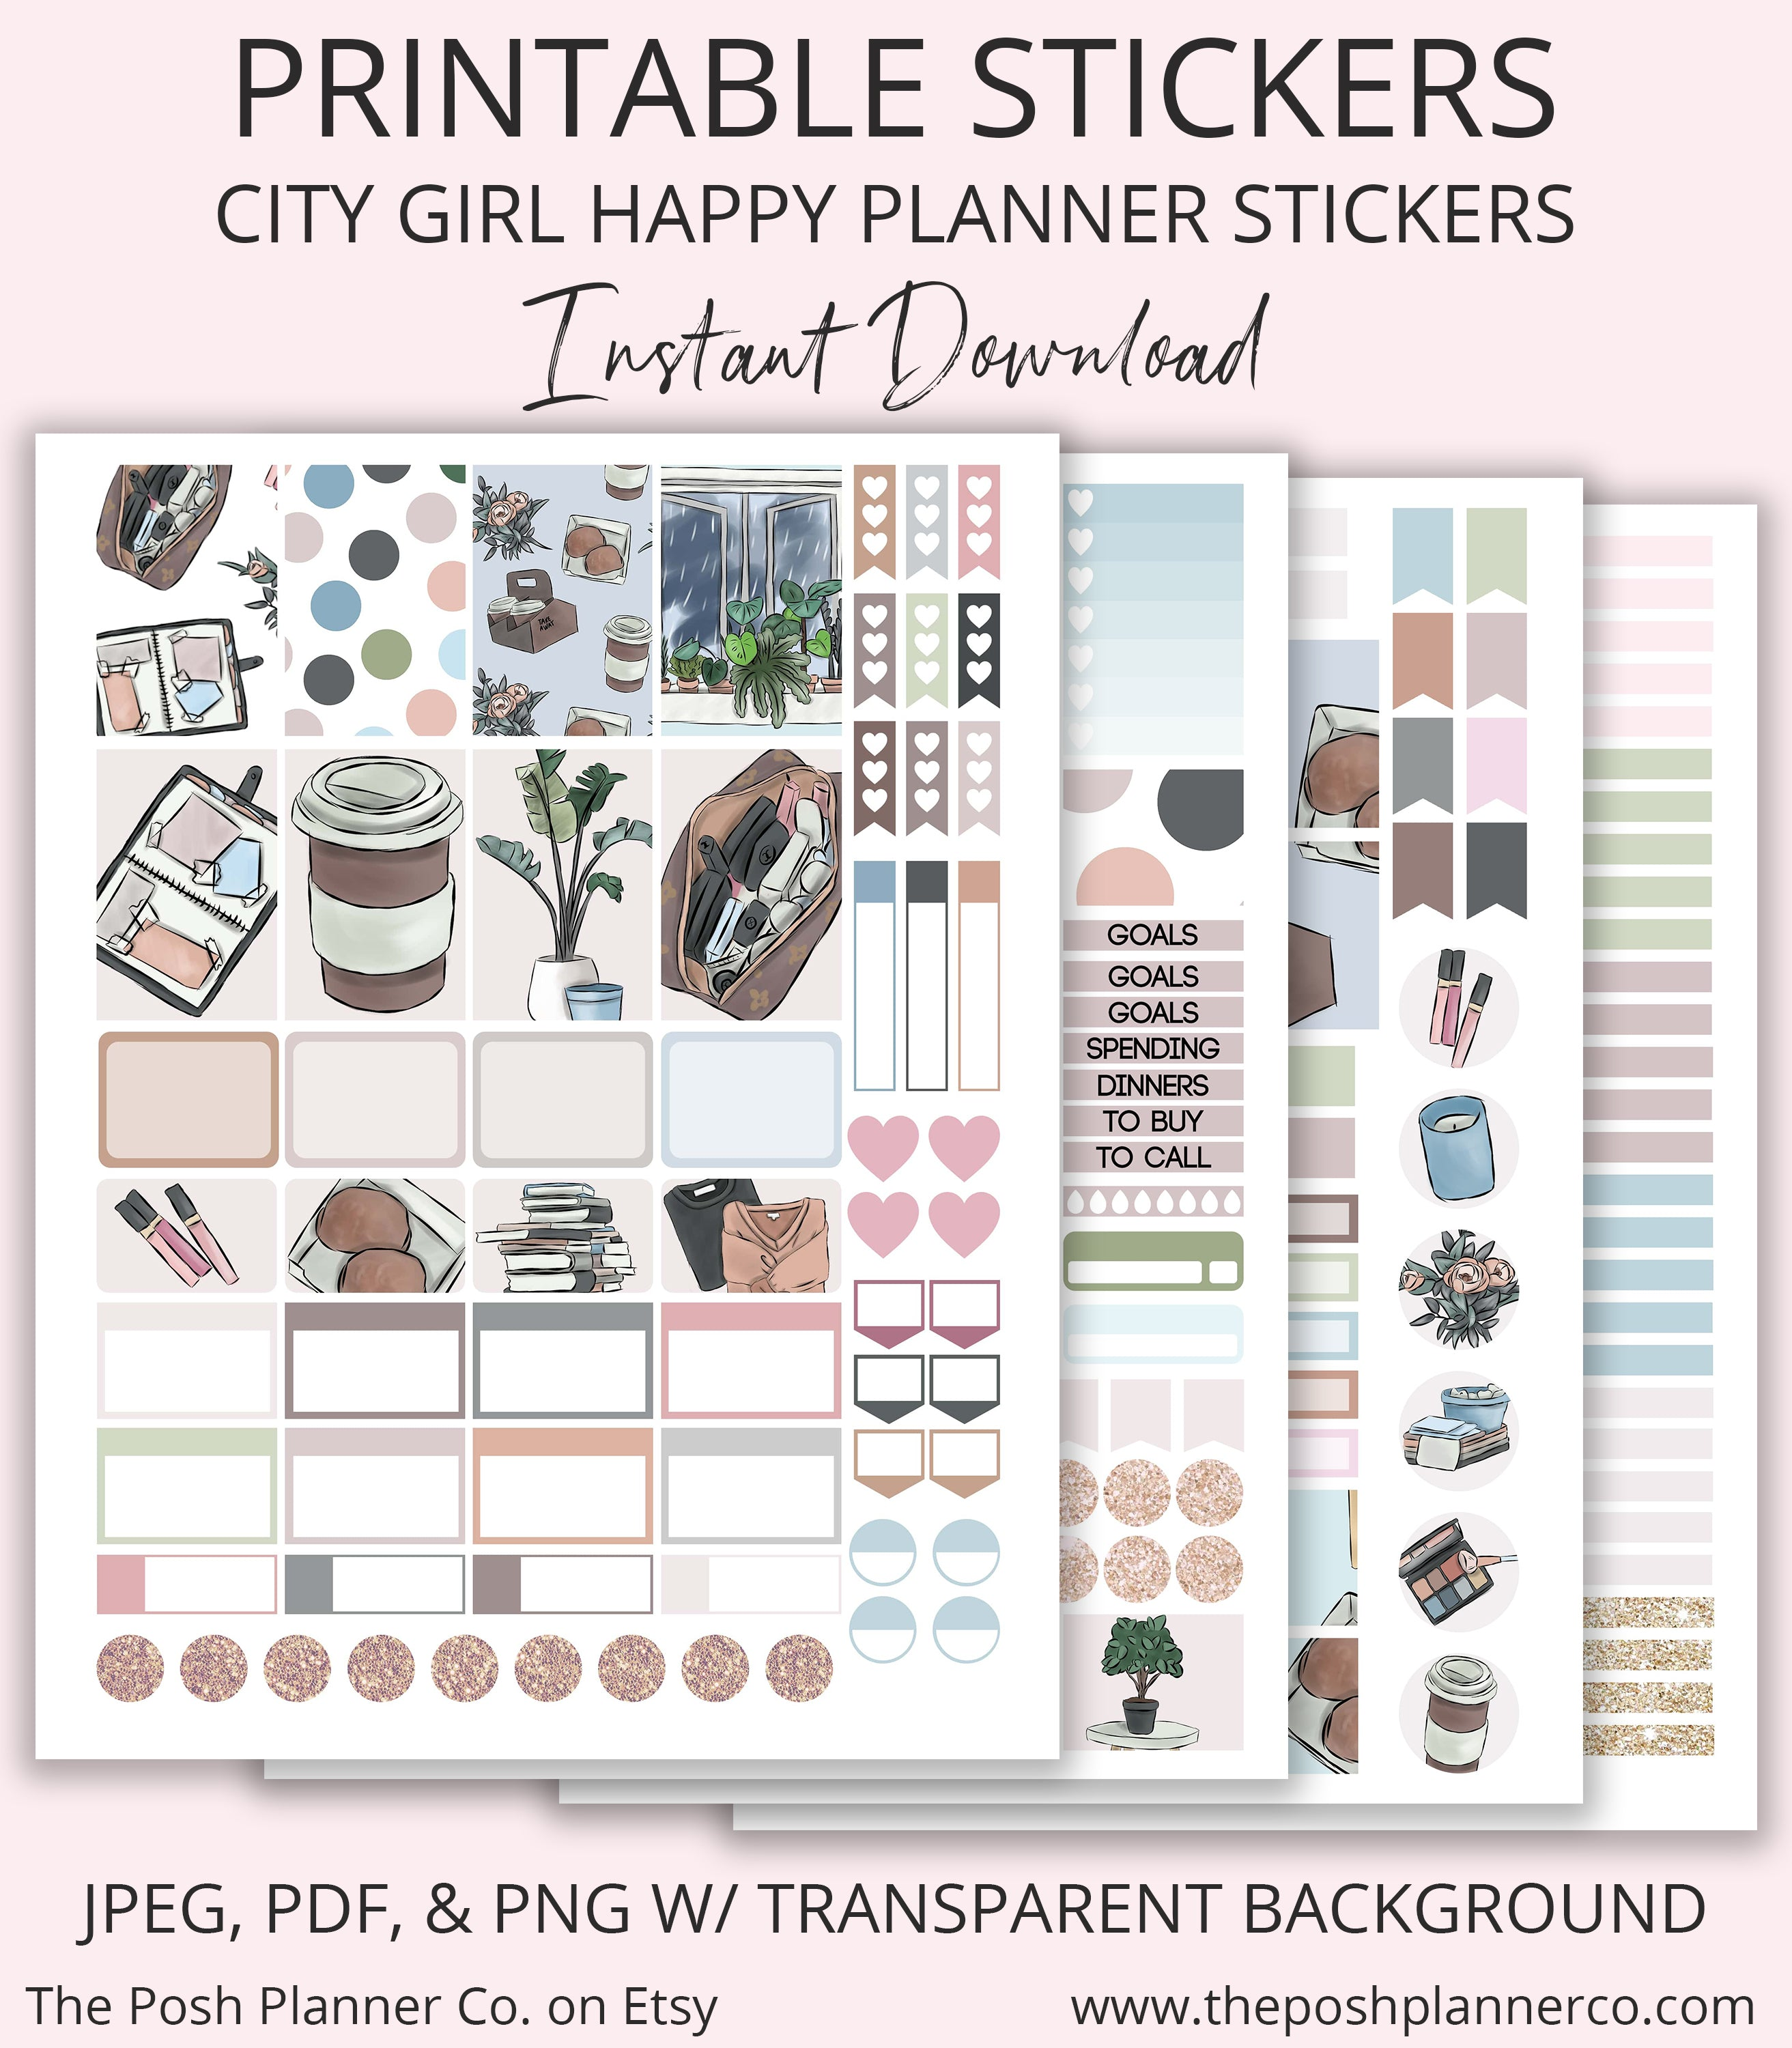 image regarding Happy Planner Printable referred to as Printable Delighted Planner Stickers - Town Female Planner Stickers - Satisfied Planner Clic Printables